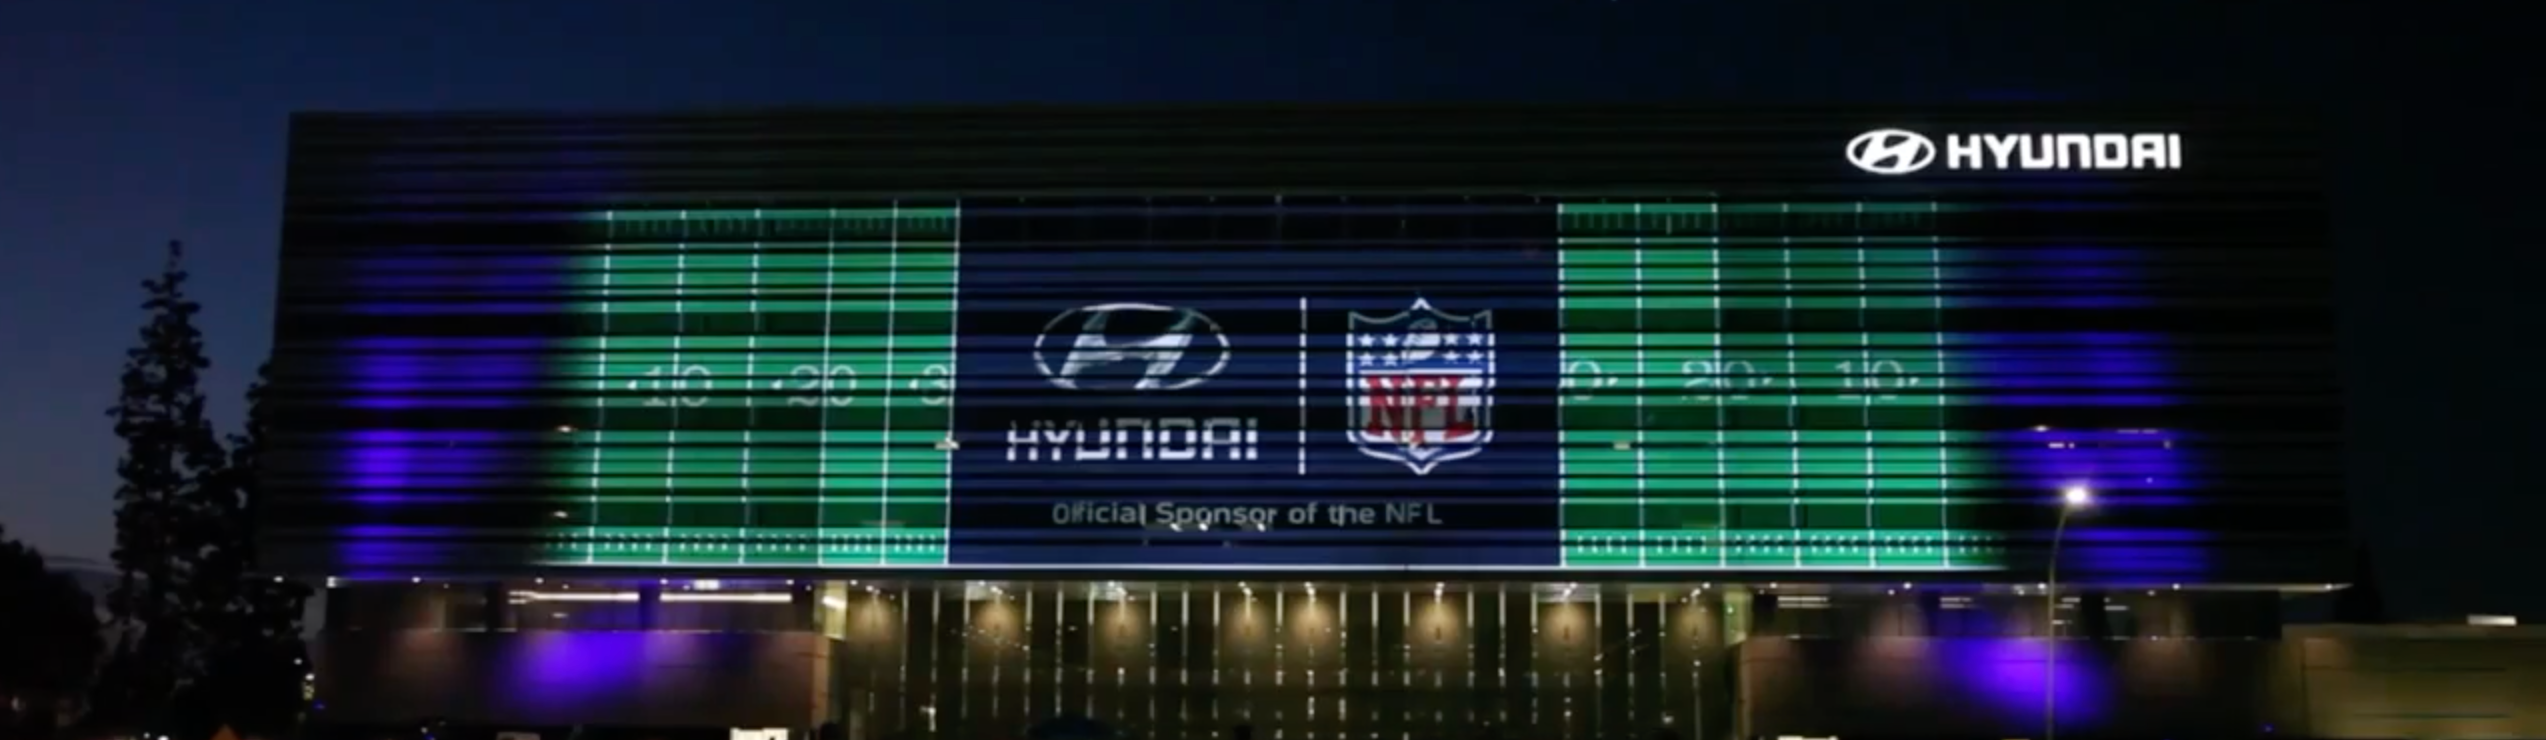 A large NFL video projection display on the side of the Hyundai headquarters